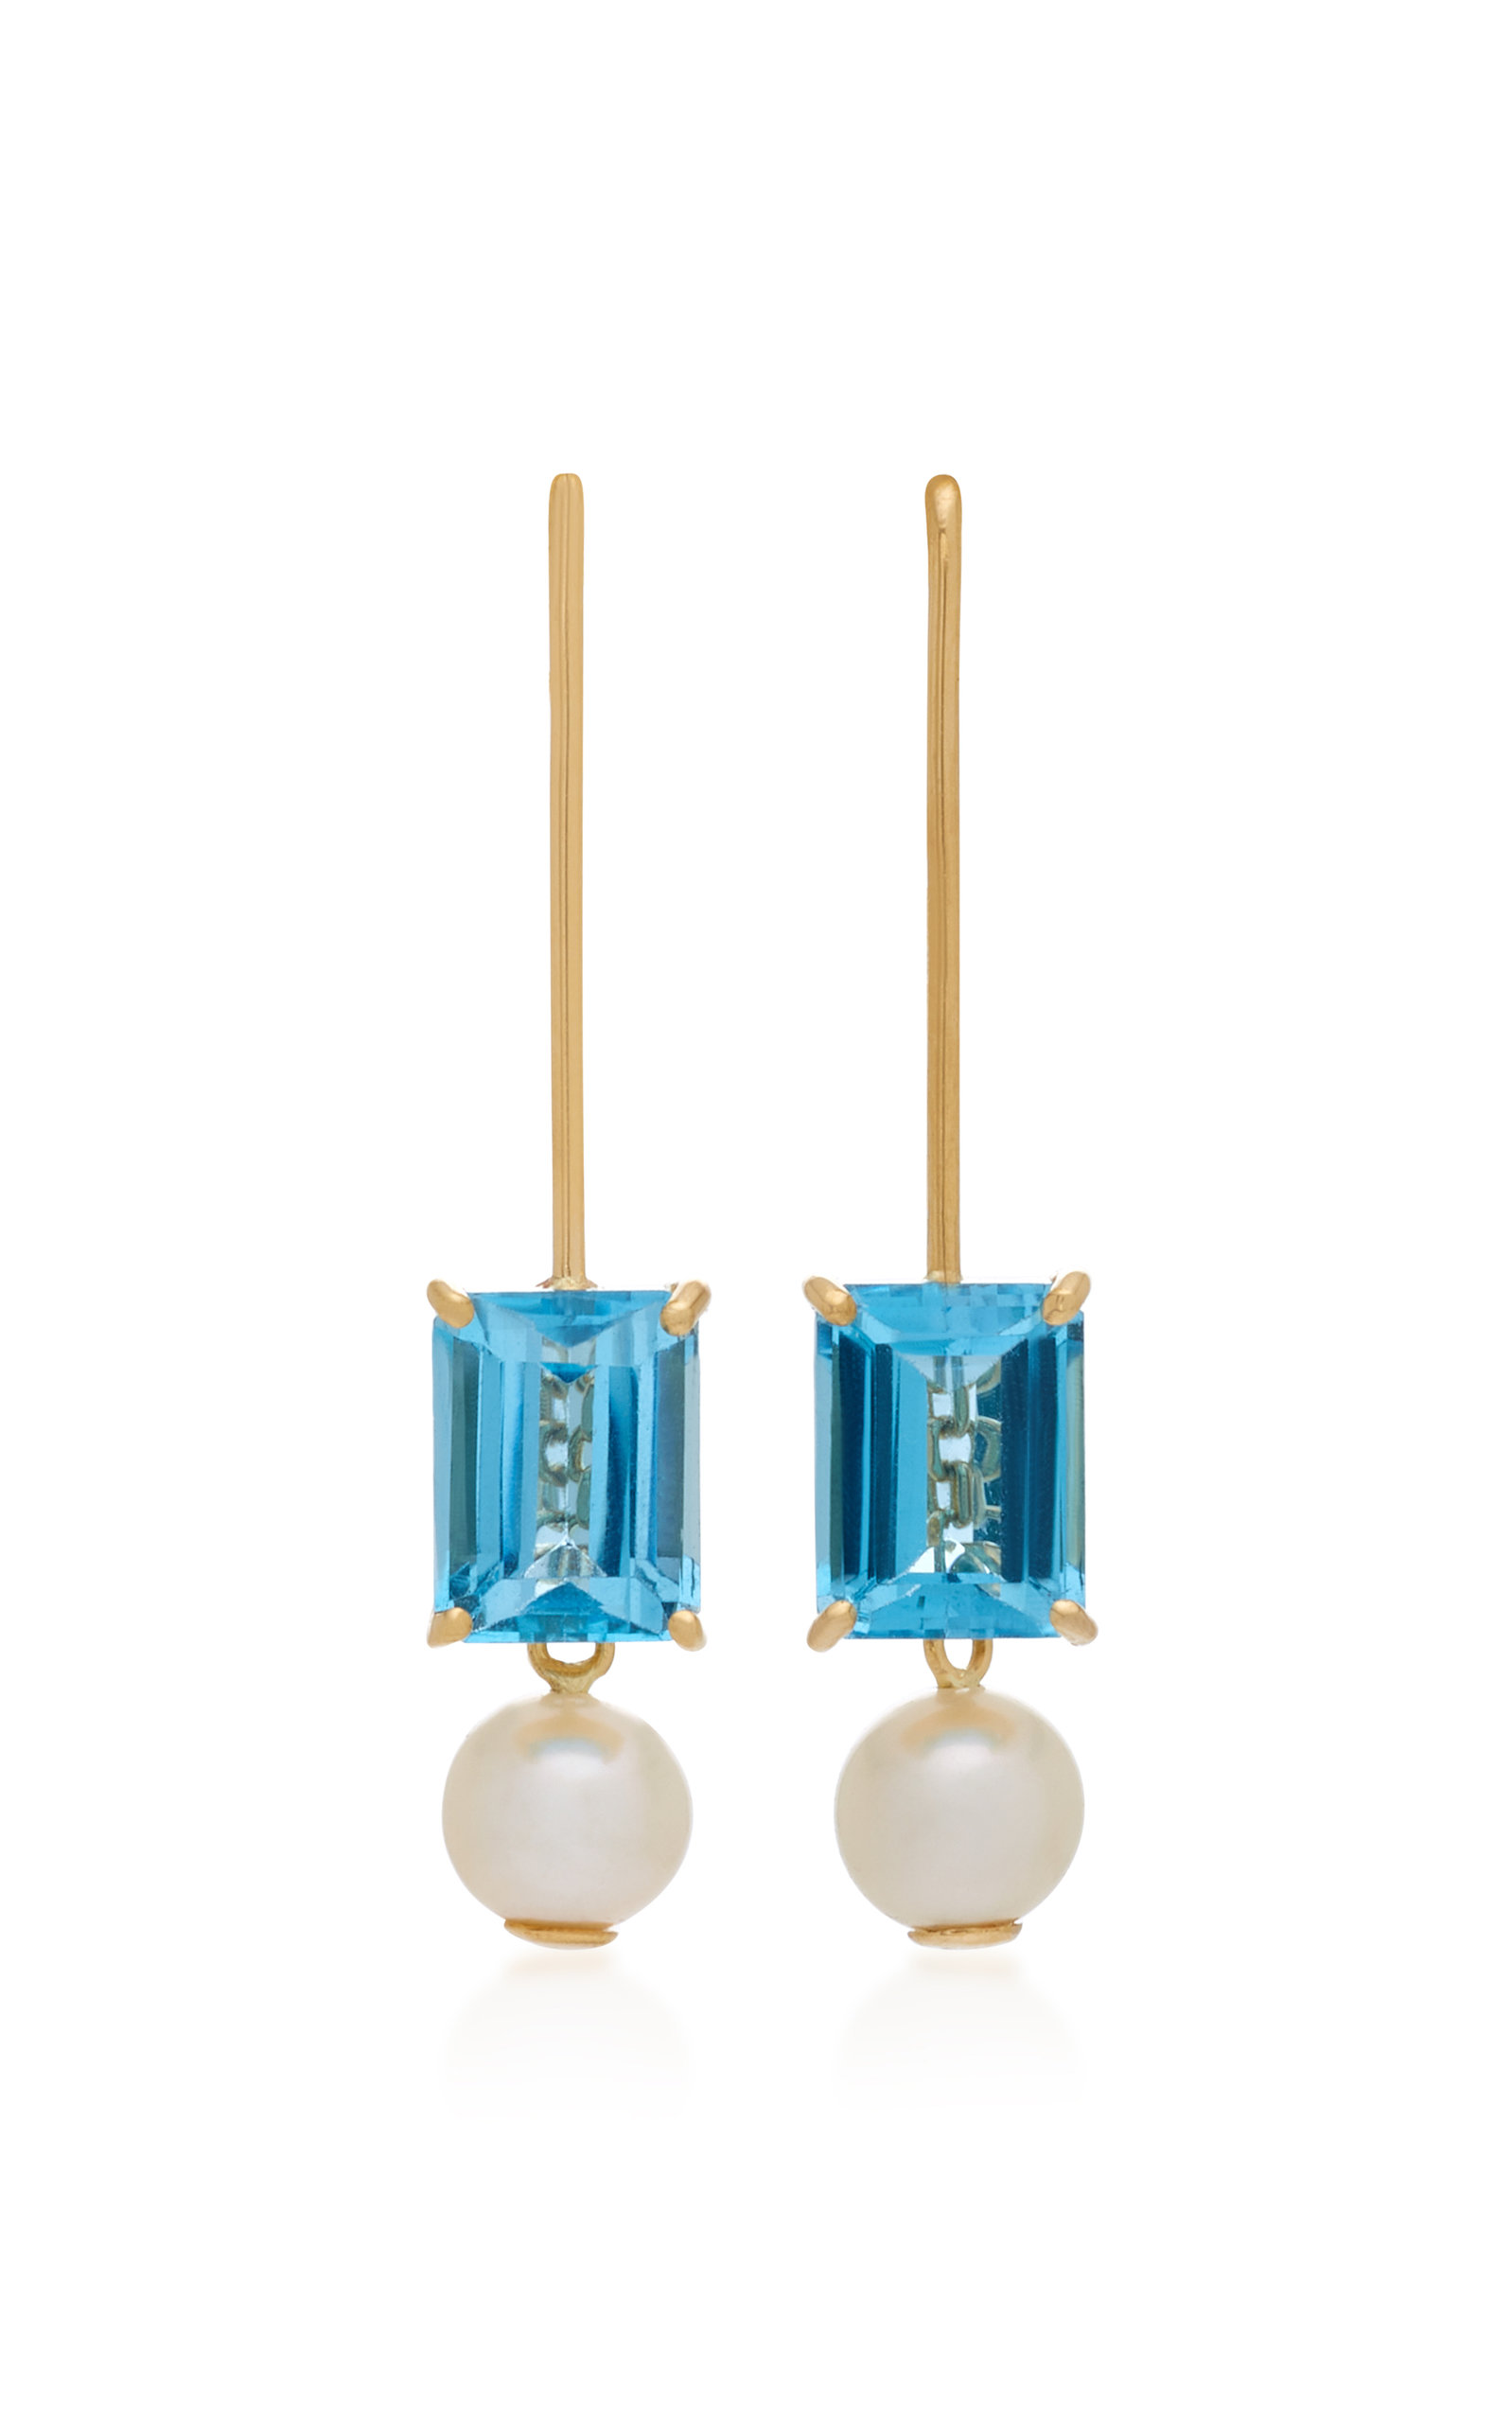 YI COLLECTION 18K GOLD BLUE TOPAZ AND PEARL EARRINGS